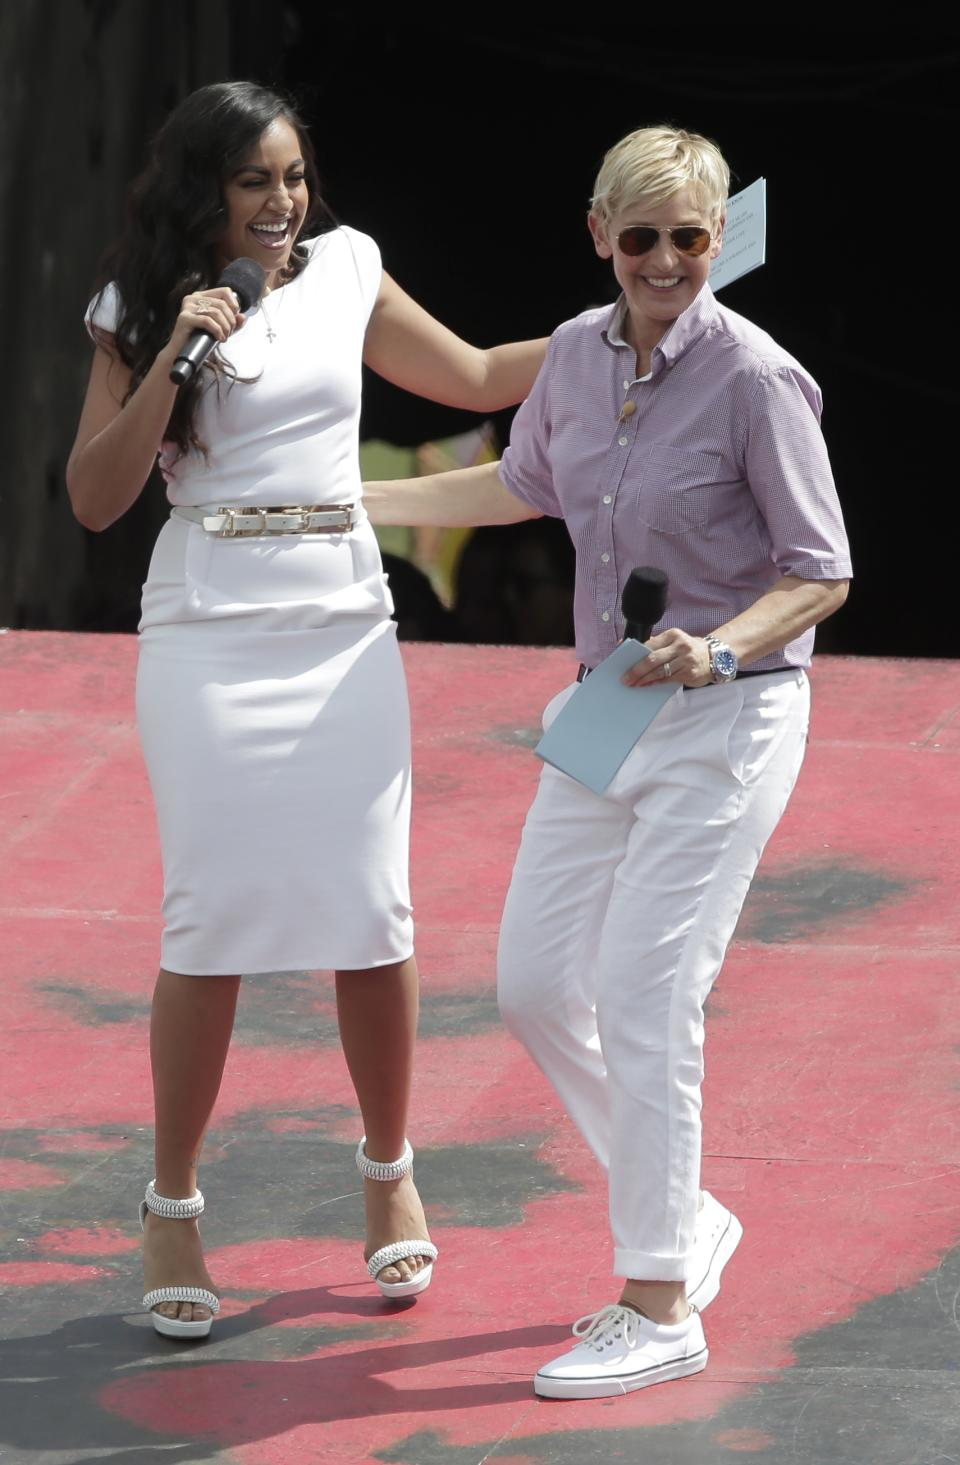 U.S. talk show host Ellen DeGeneres greets Australian singer and actor Jessica Mauboy during a recording session of DeGeneres' show in Sydney, Australia, Saturday, March 23, 2013. (AP Photo/Rick Rycroft)